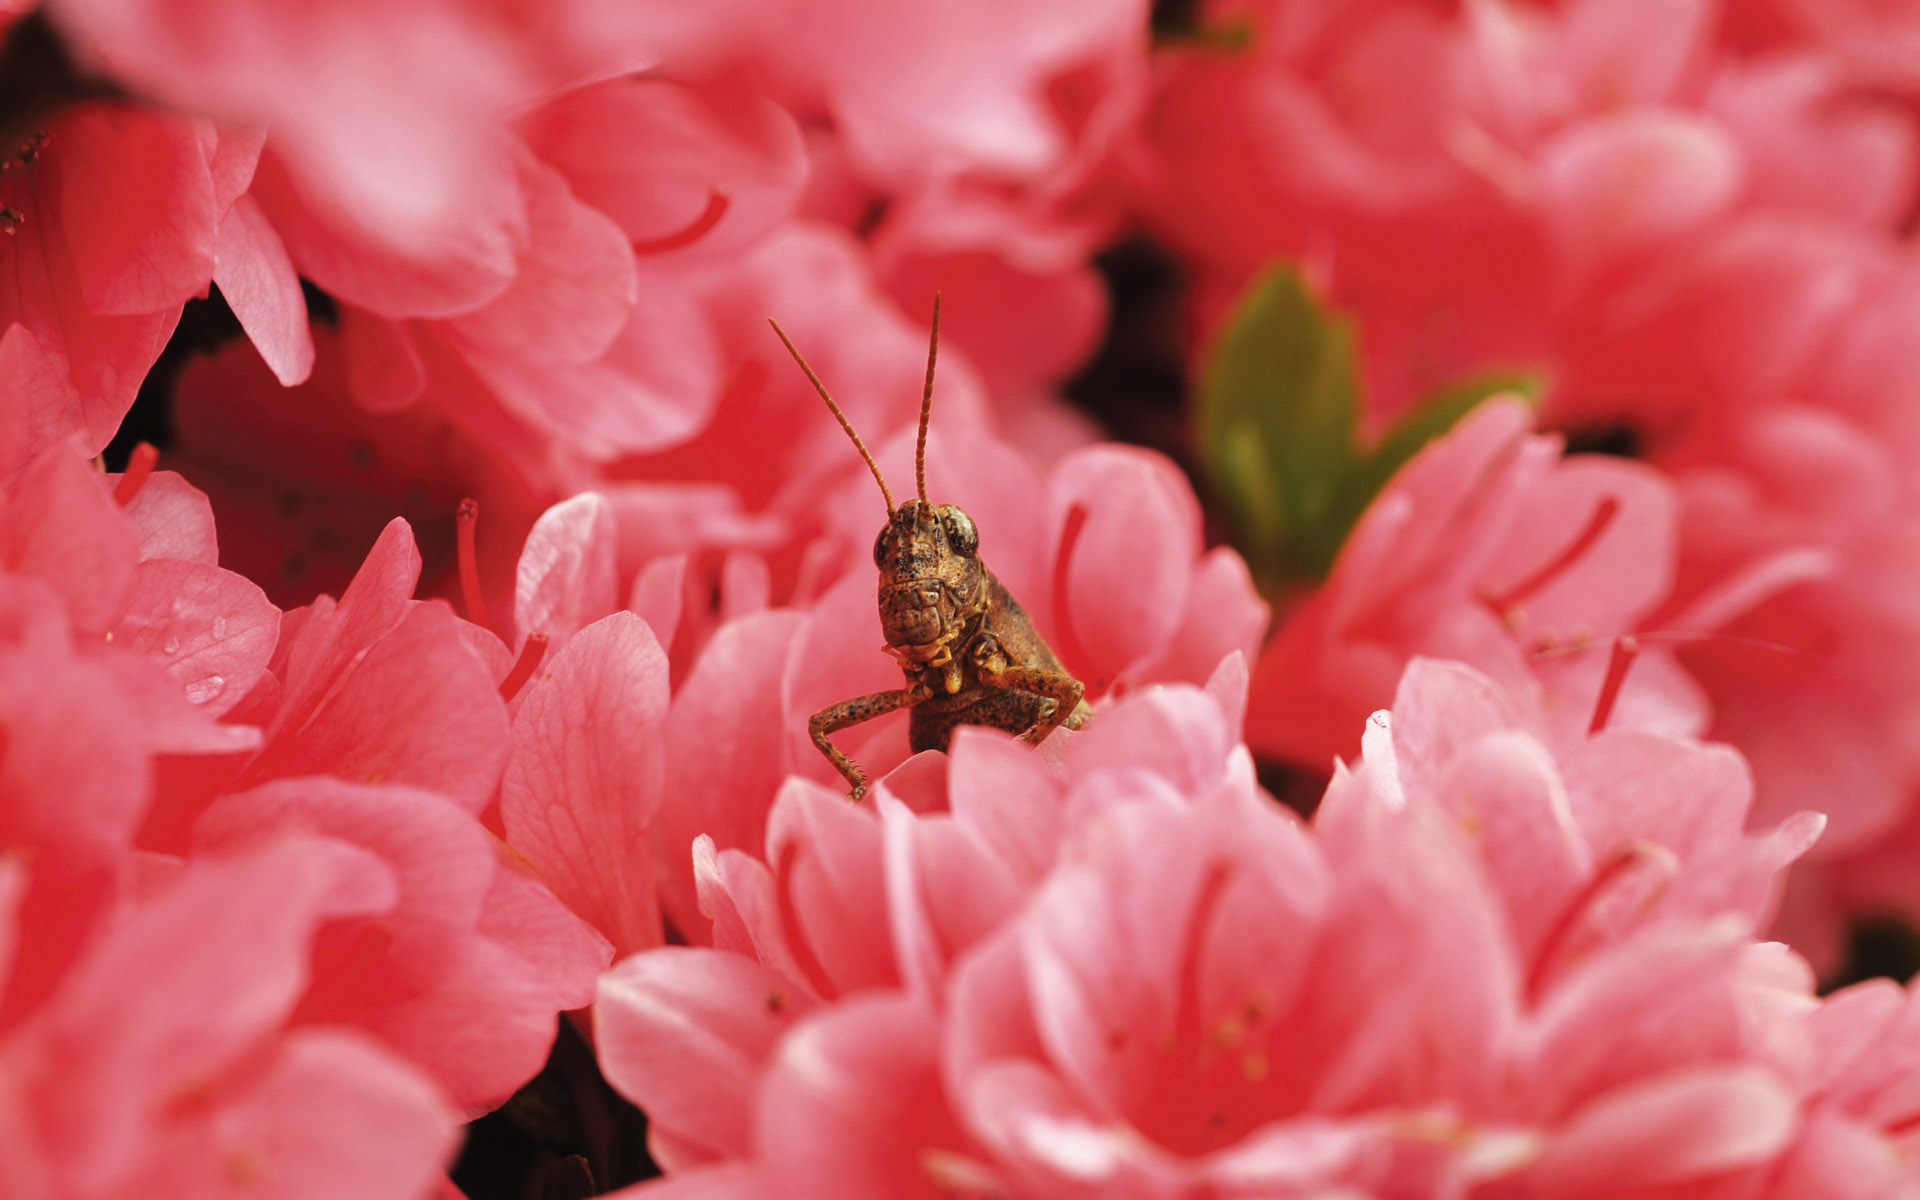 Widescreen insect photo material 3054